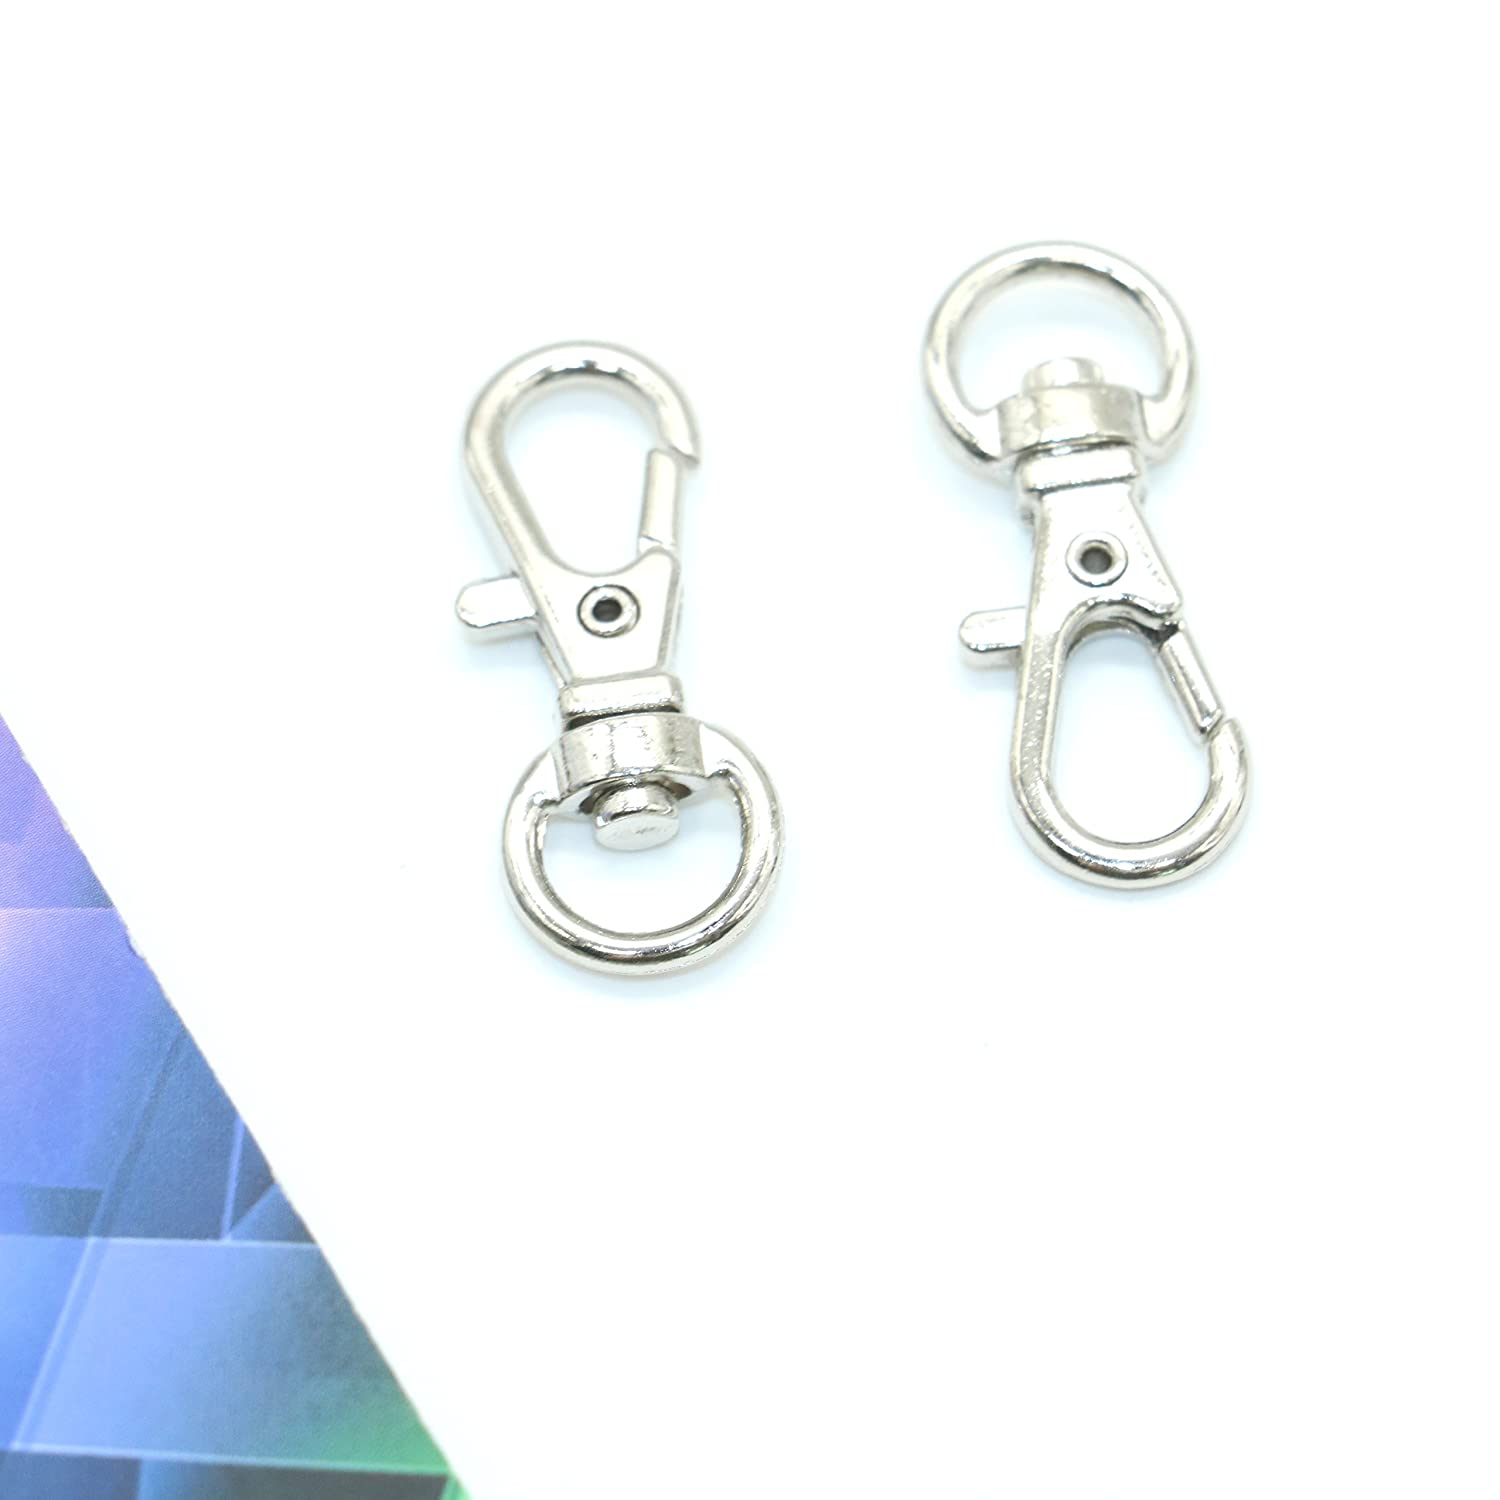 Pack of 50 Metal Small Swivel Clasps Lanyard Snap Hook Lobster Claw Clasp Jewelry Findings By IDS,1 1//4 x 1//2